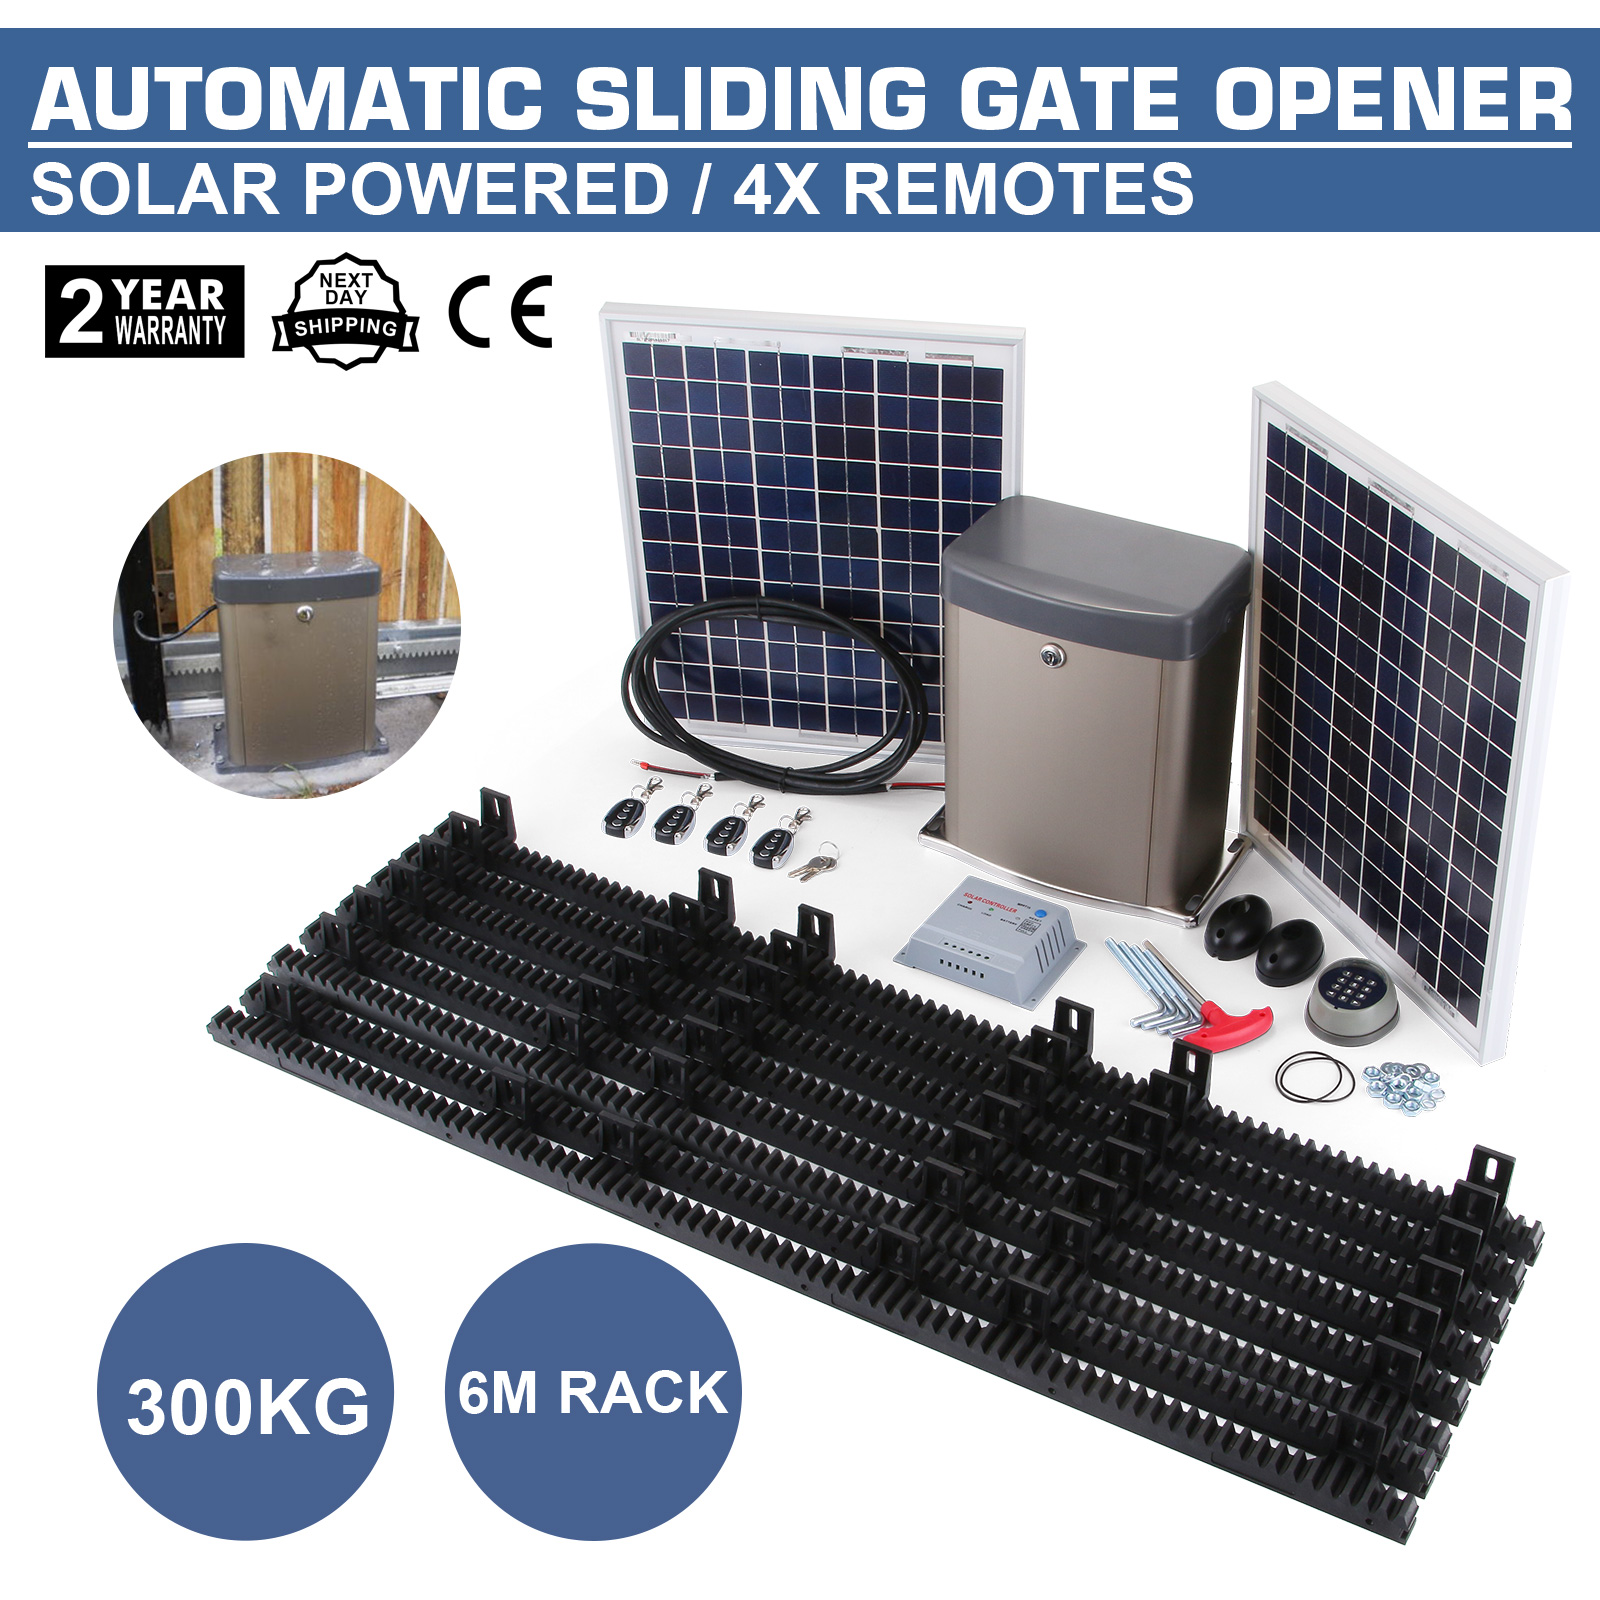 automatic solar sliding gate opener operator 330kg professional wireless keypad 895800994037 ebay. Black Bedroom Furniture Sets. Home Design Ideas